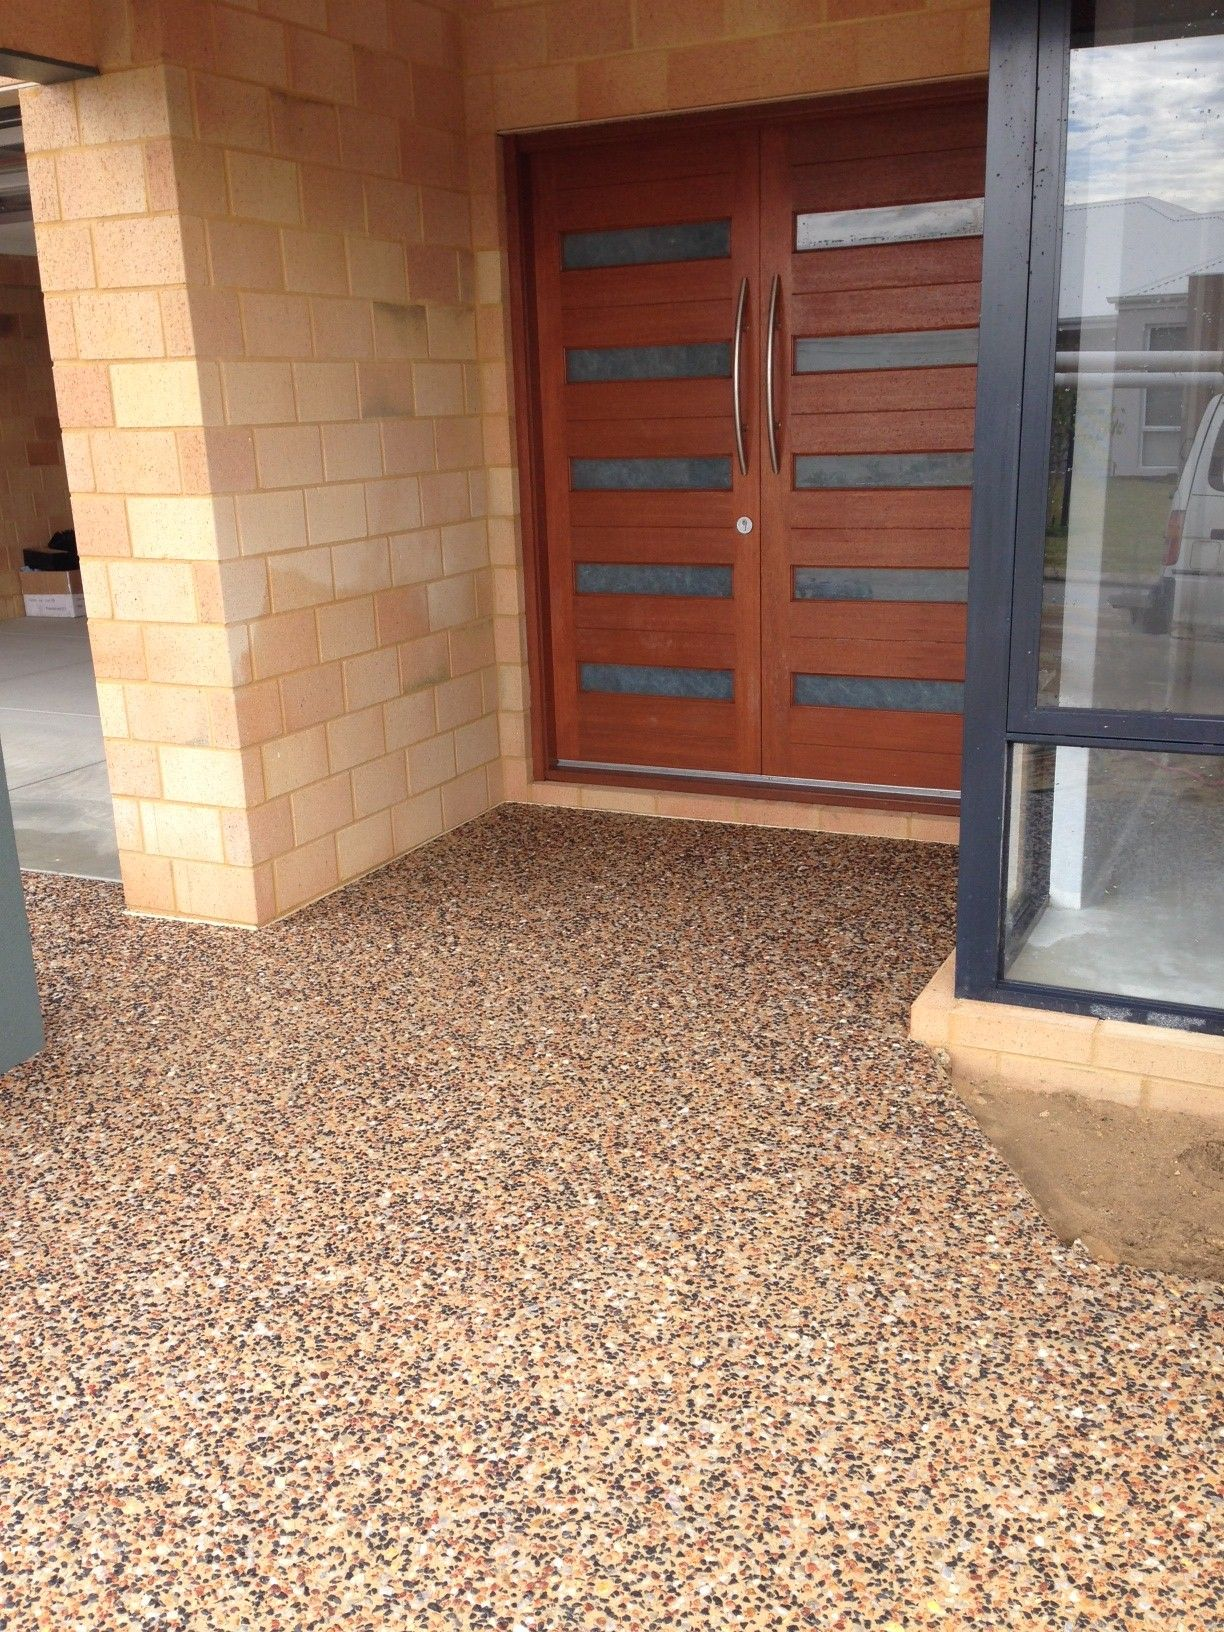 Sealing exposed aggregate pool deck - Our Beautiful New Driveway And Portico Paving Exposed Aggregate In The Same Tones As